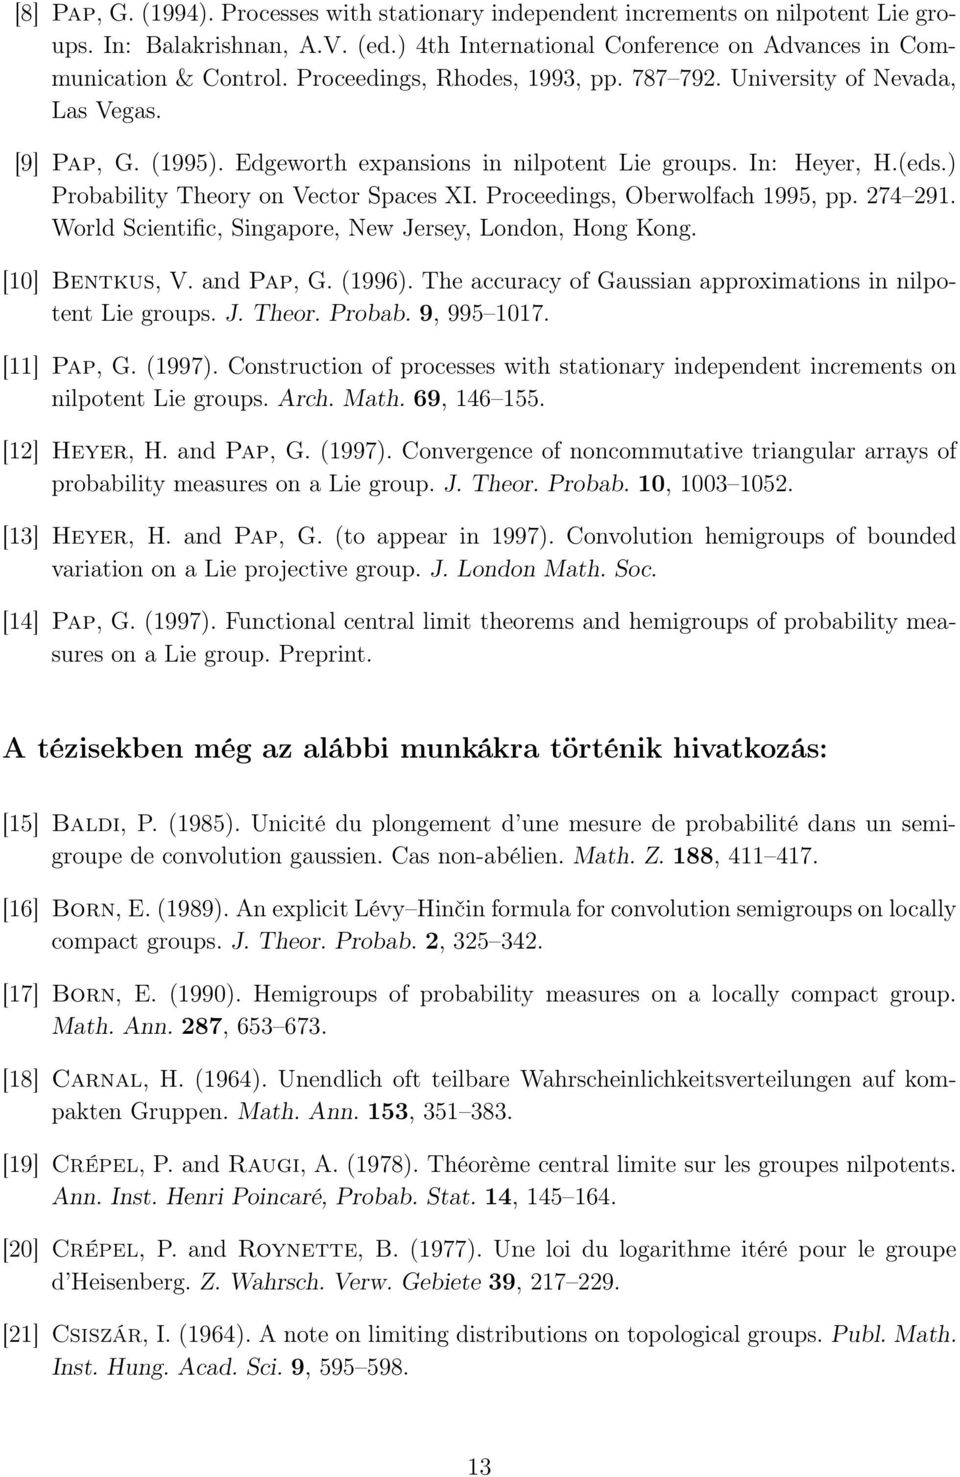 Proceedings, Oberwolfach 1995, pp. 274 291. World Scientific, Singapore, New Jersey, London, Hong Kong. [10] Bentkus, V. and Pap,. 1996. The accuracy of aussian approximations in nilpotent Lie groups.